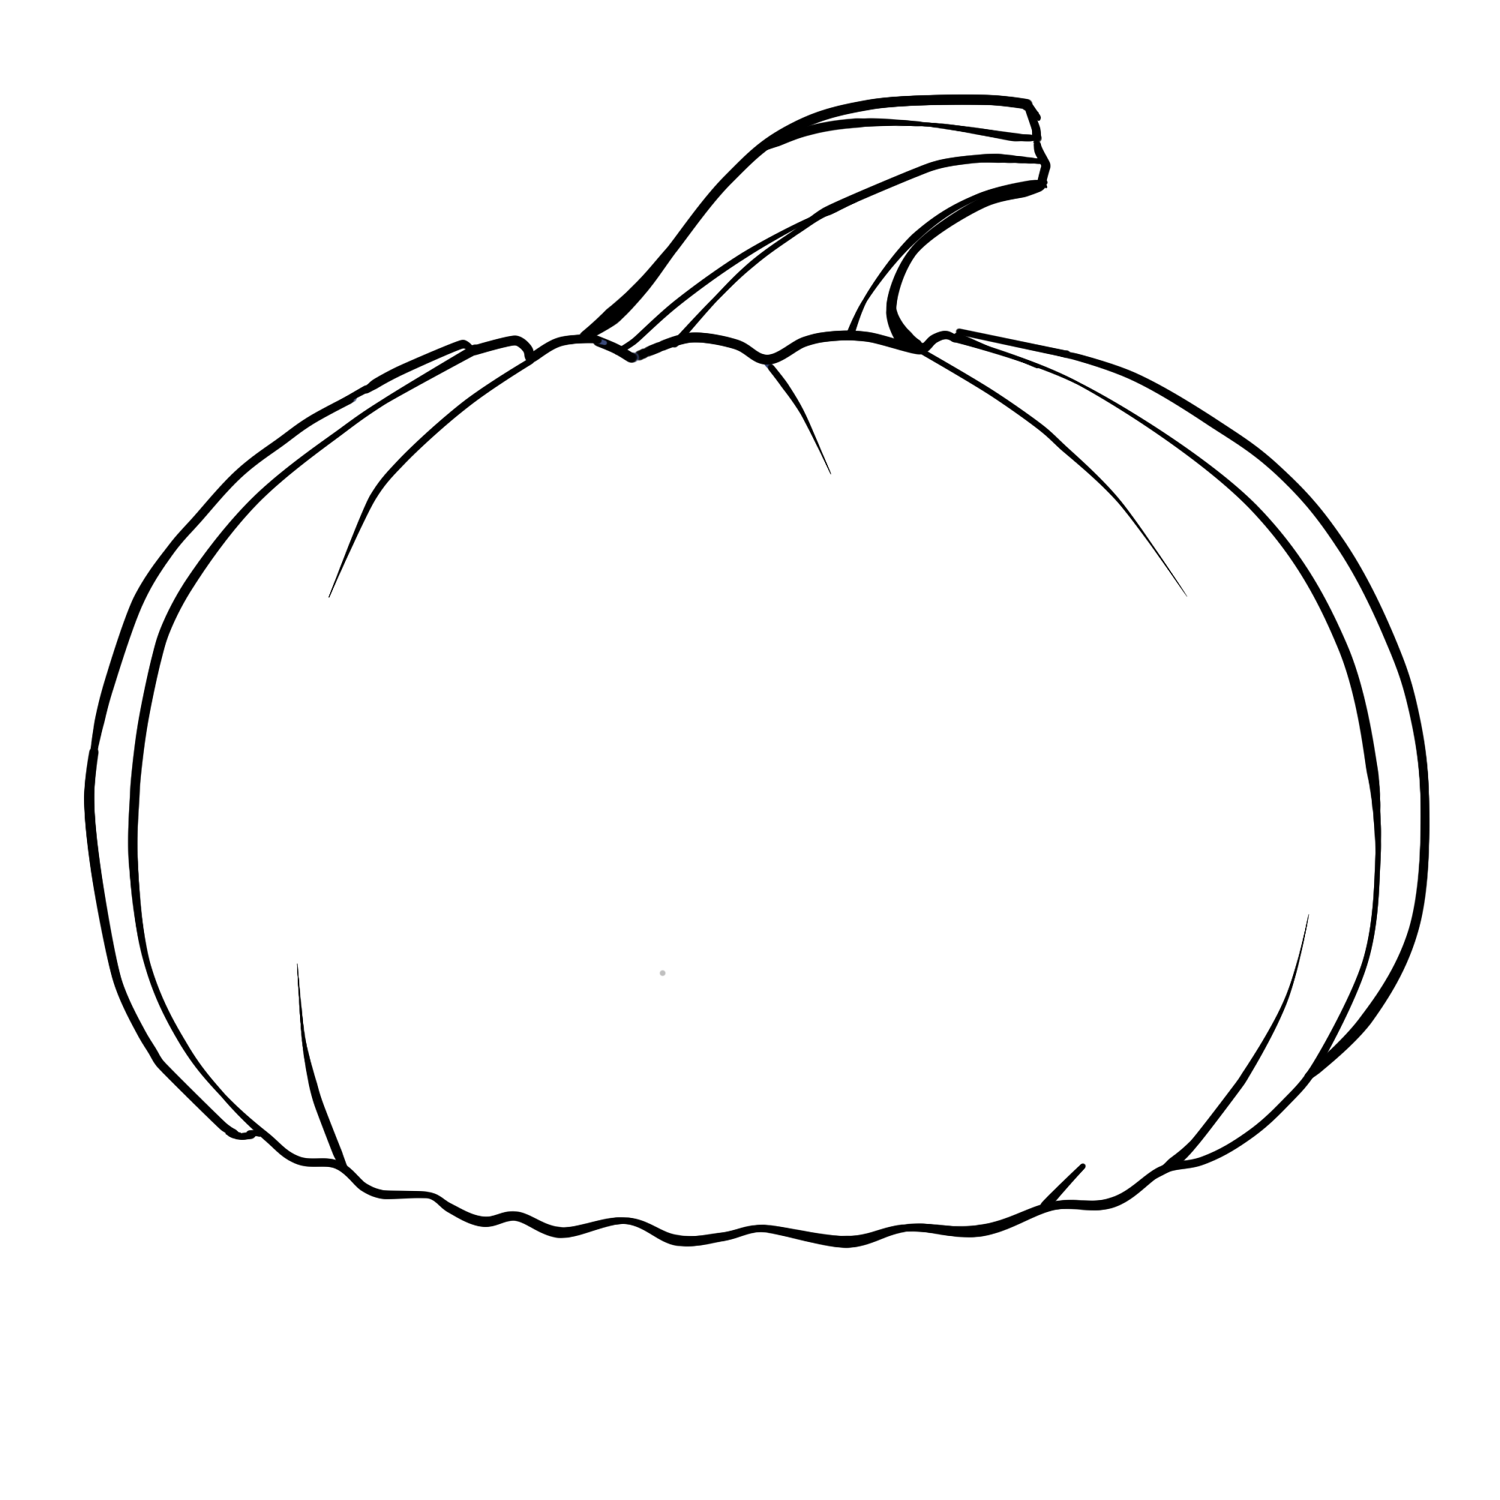 plain pumpkin coloring pages pumpkin patch coloring page clipart panda free clipart plain coloring pumpkin pages